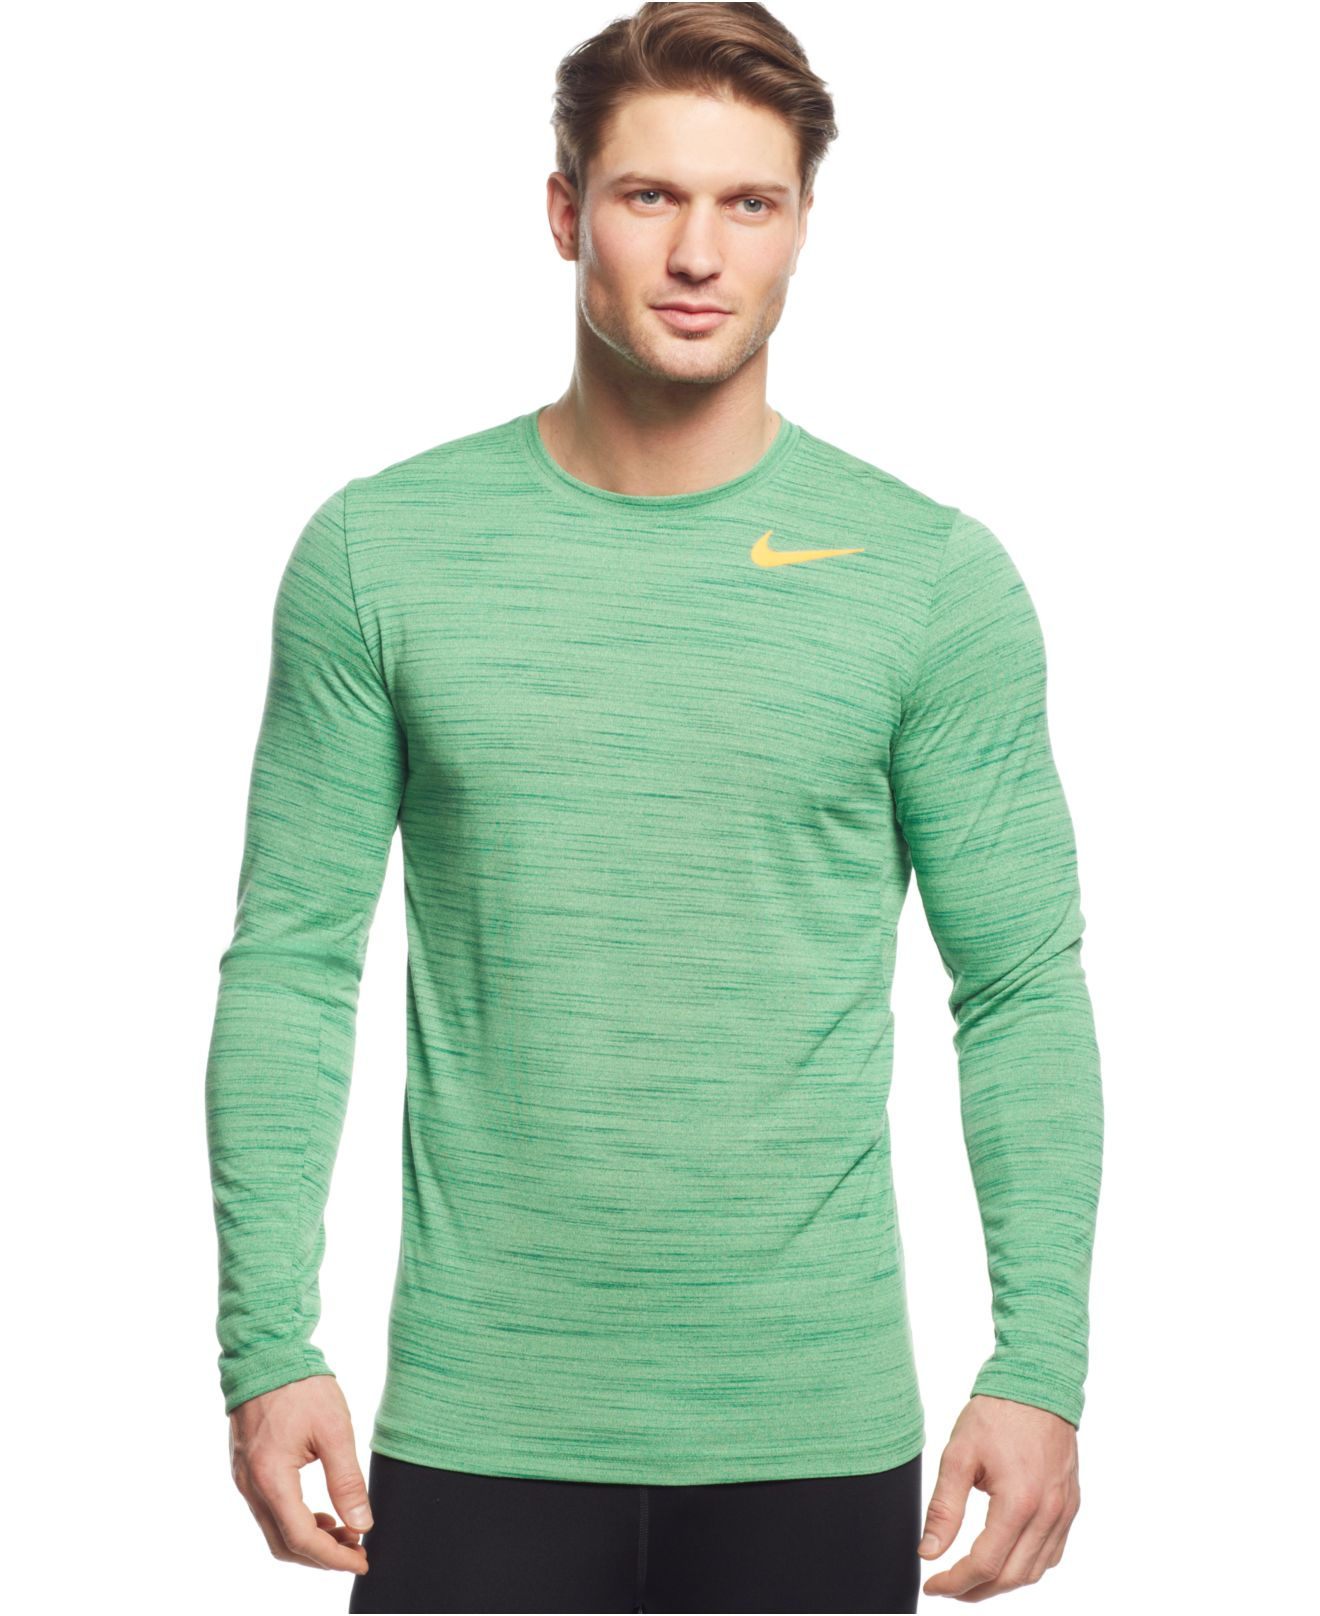 4ea4254832ea Lyst - Nike Dri-fit Touch Performance Long Sleeve Shirt in Green for Men